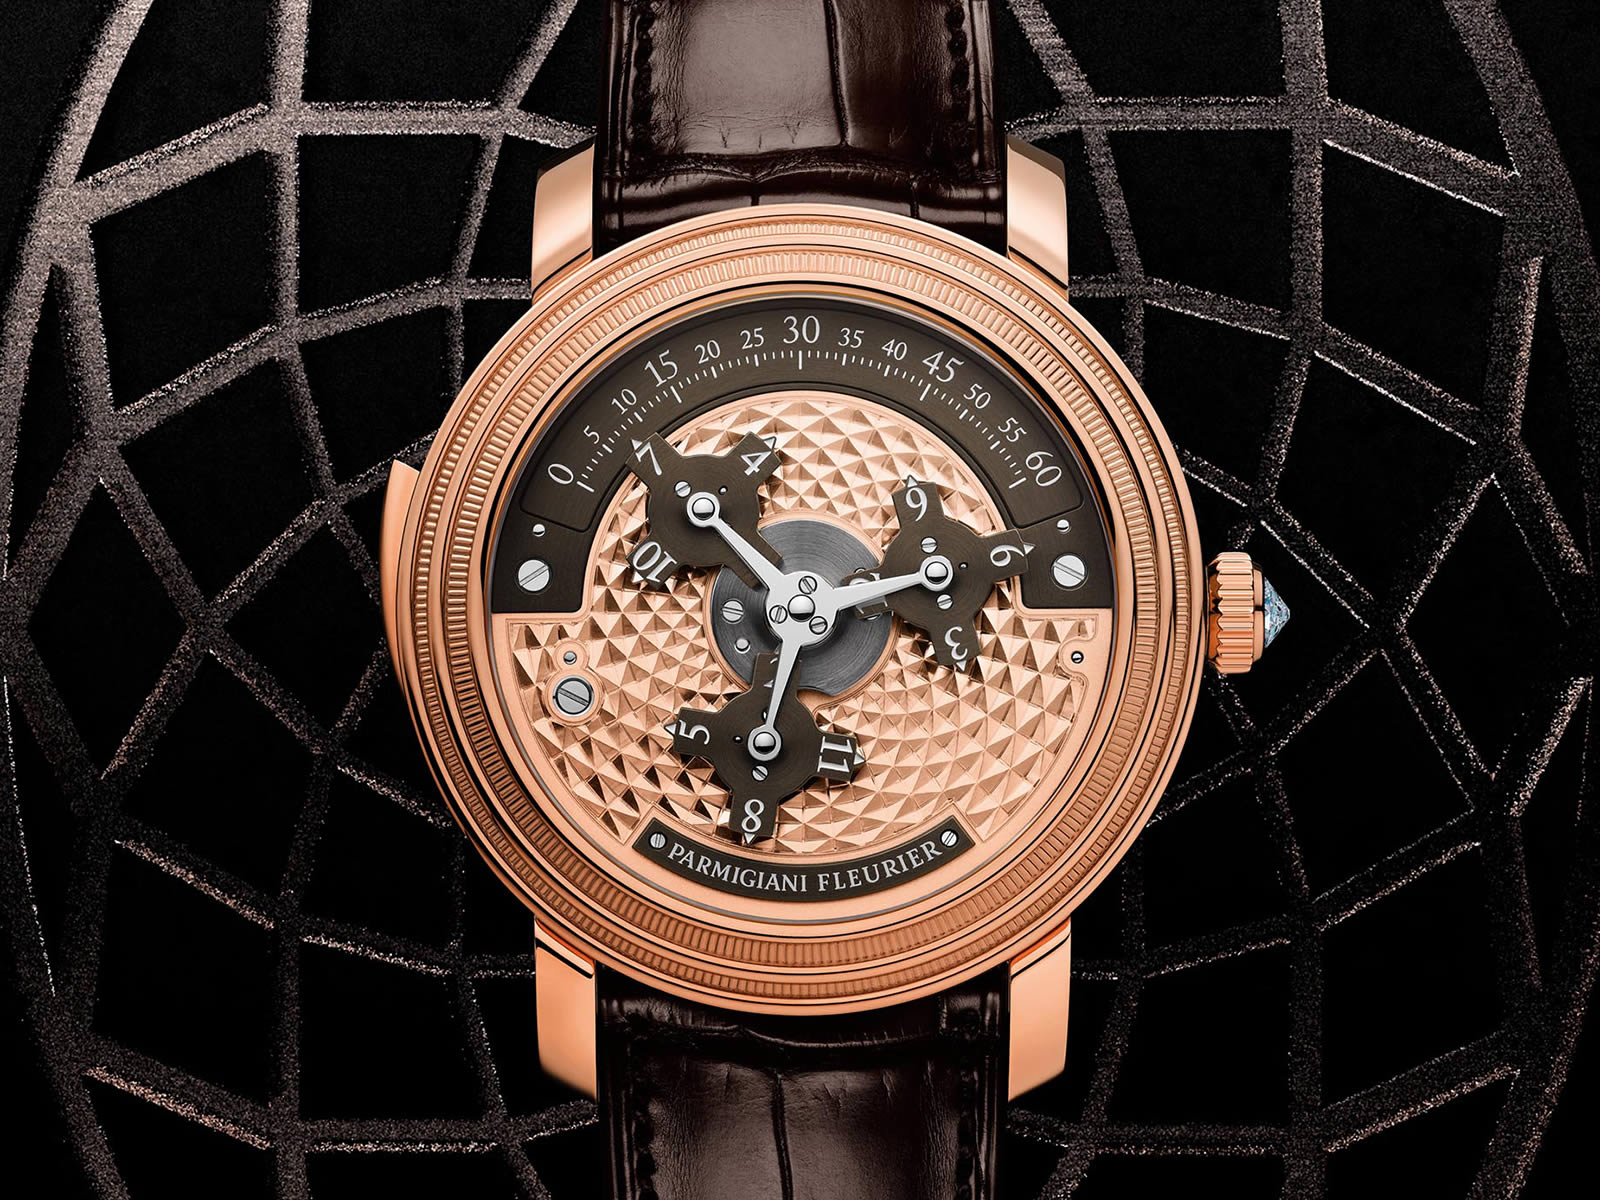 pfh476-1001300-ha1241-parmigiani-fleurier-toric-capitole-in-rose-gold-1.jpg